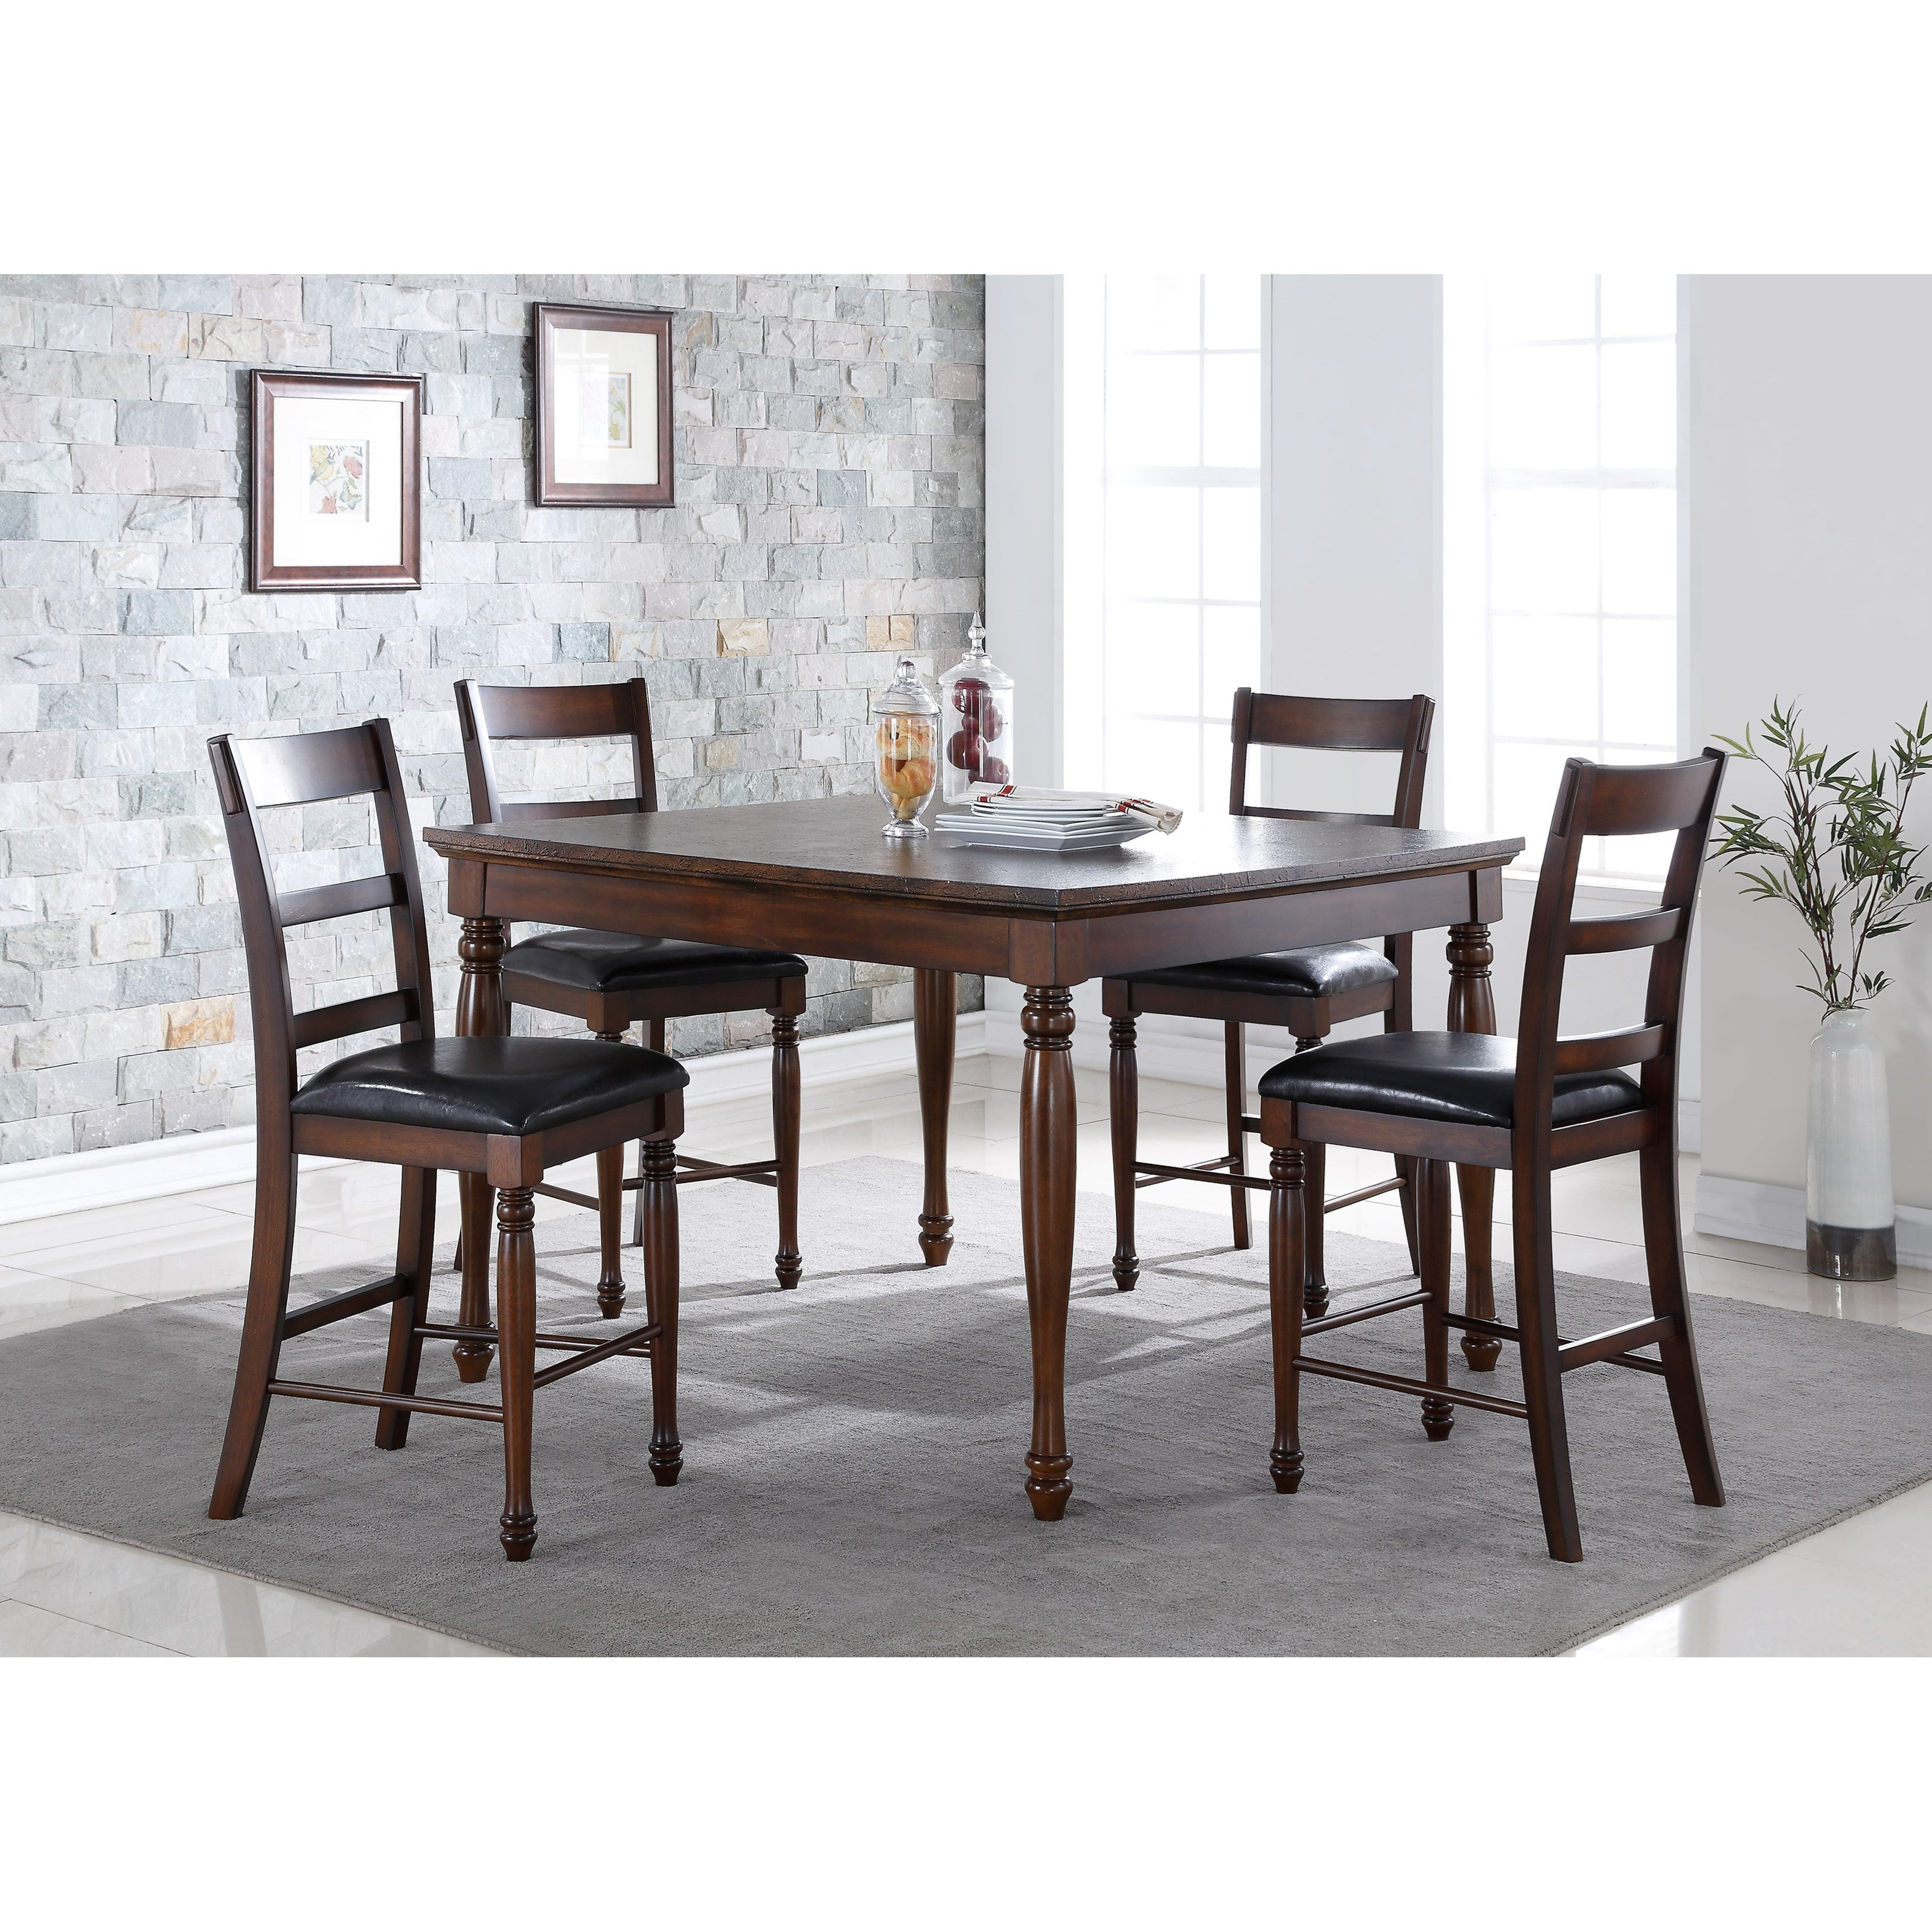 Legends Furniture Breckenridge 5 Piece Counter Height Table & Stool Set - Item Number: ZBRG-8000D